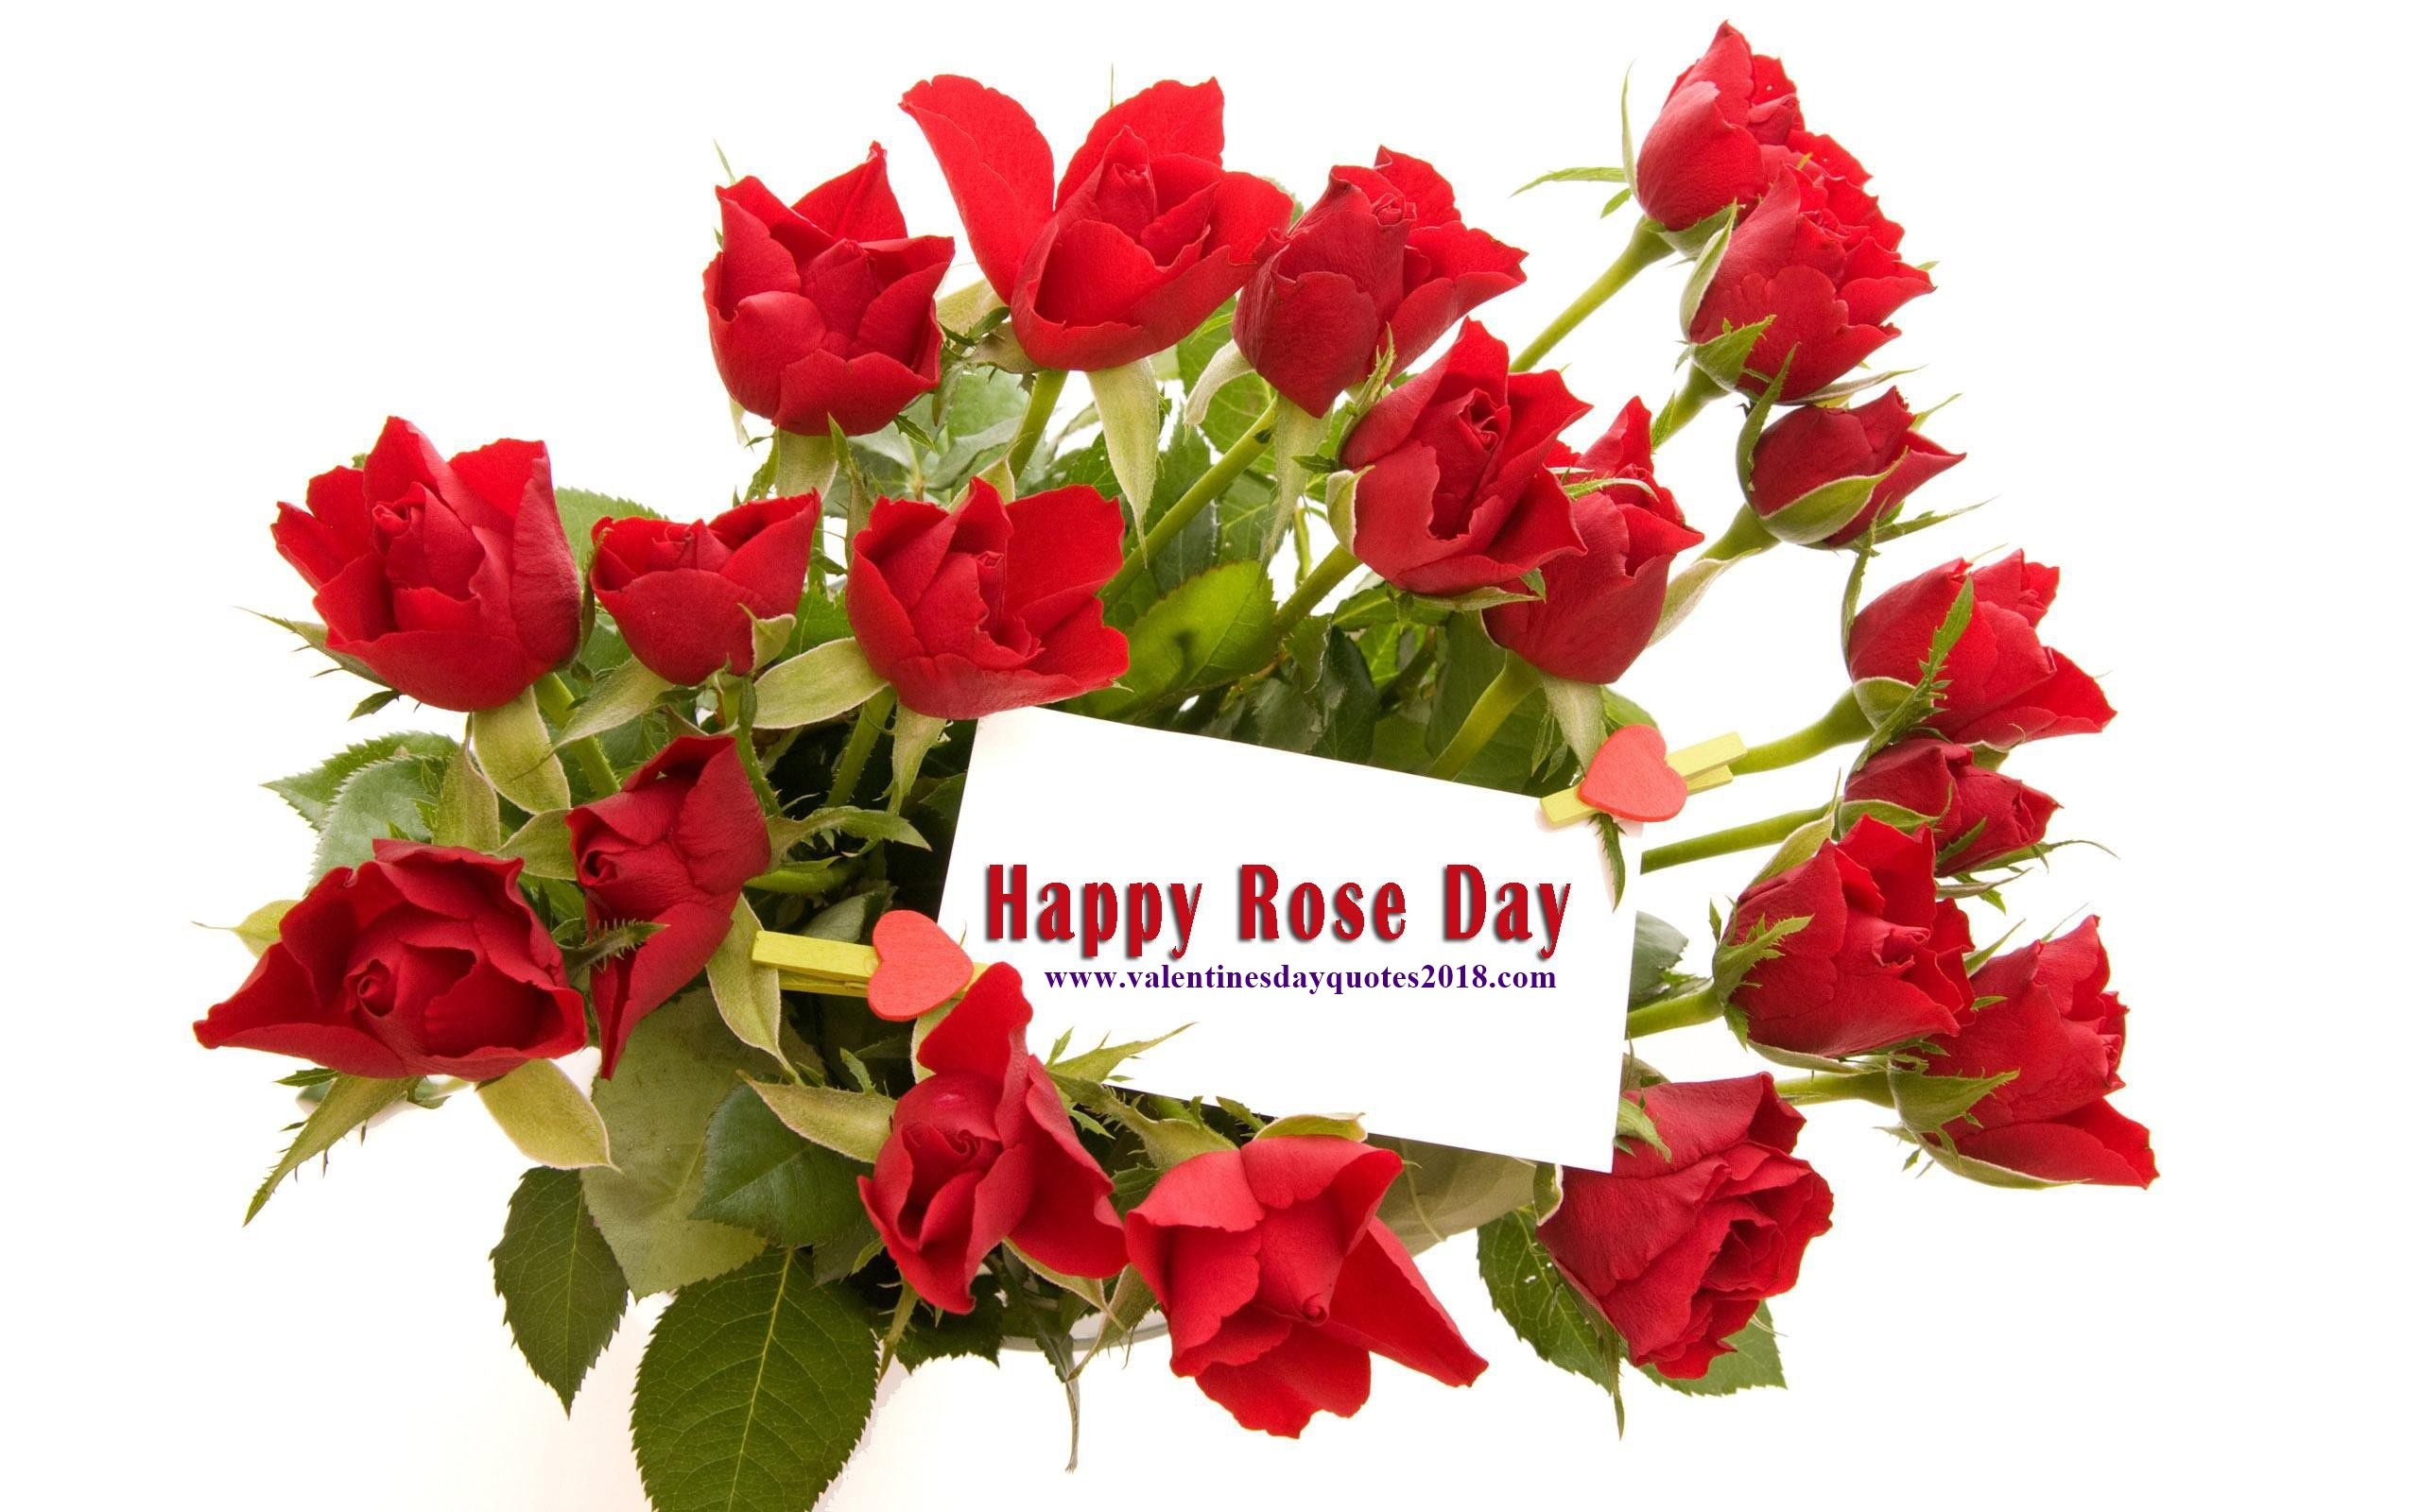 Happy Rose Day 2020 Wishes Images